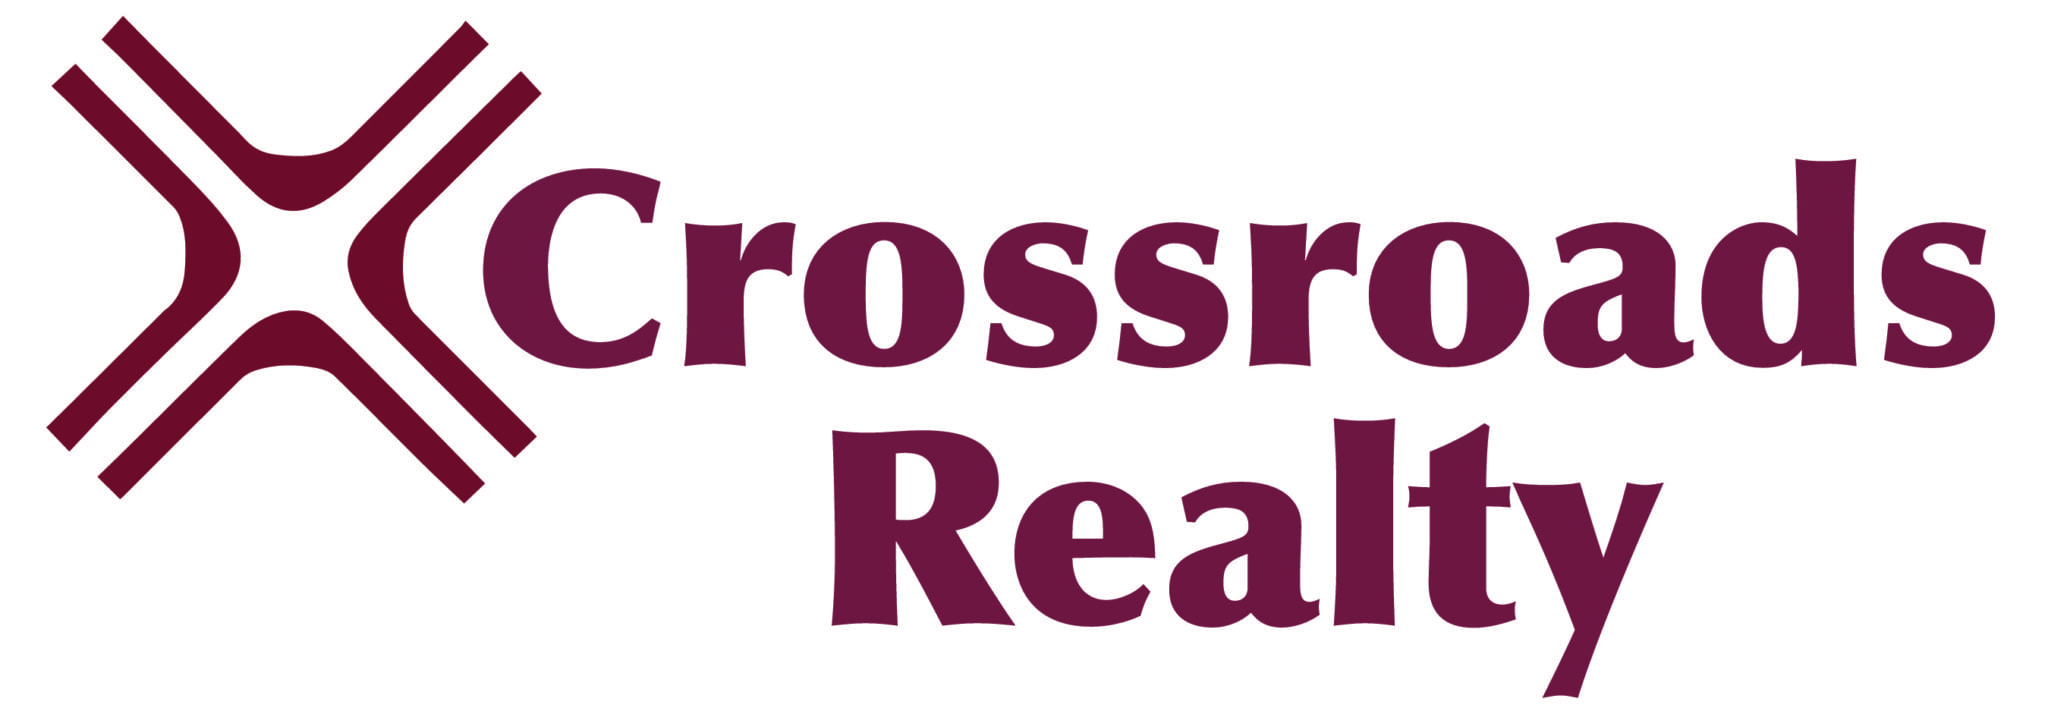 Logo: Crossroads Realty, CVCJ Partner in Caring